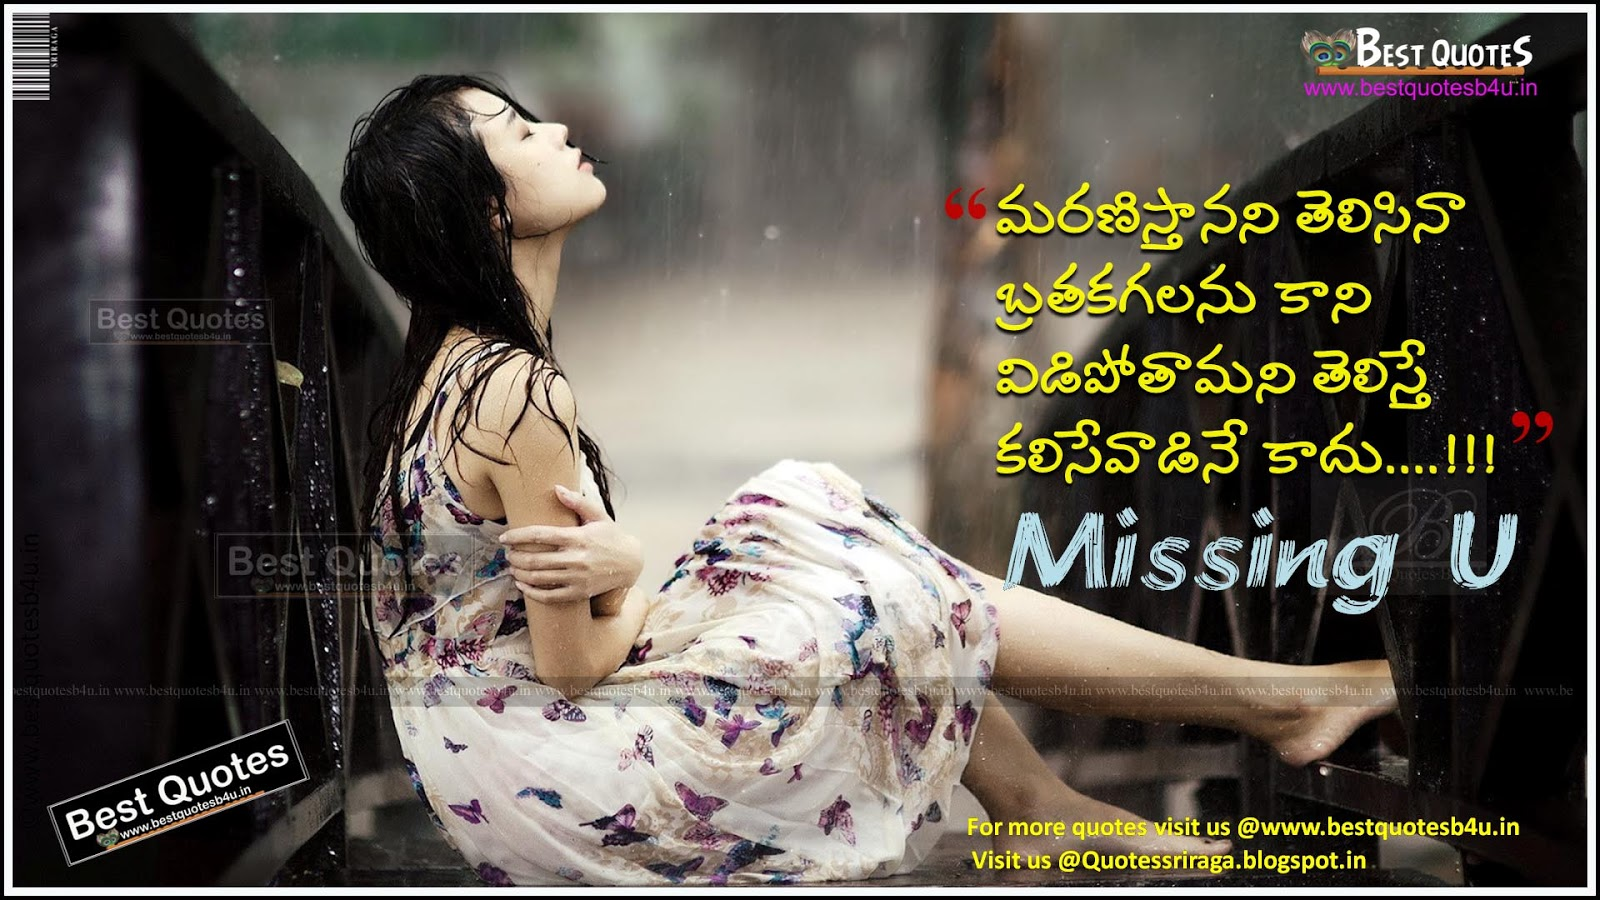 Miss U Love Quotes In Telugu : Love failure breakup Missing you quotations in Telugu BestQuotesb4U ...